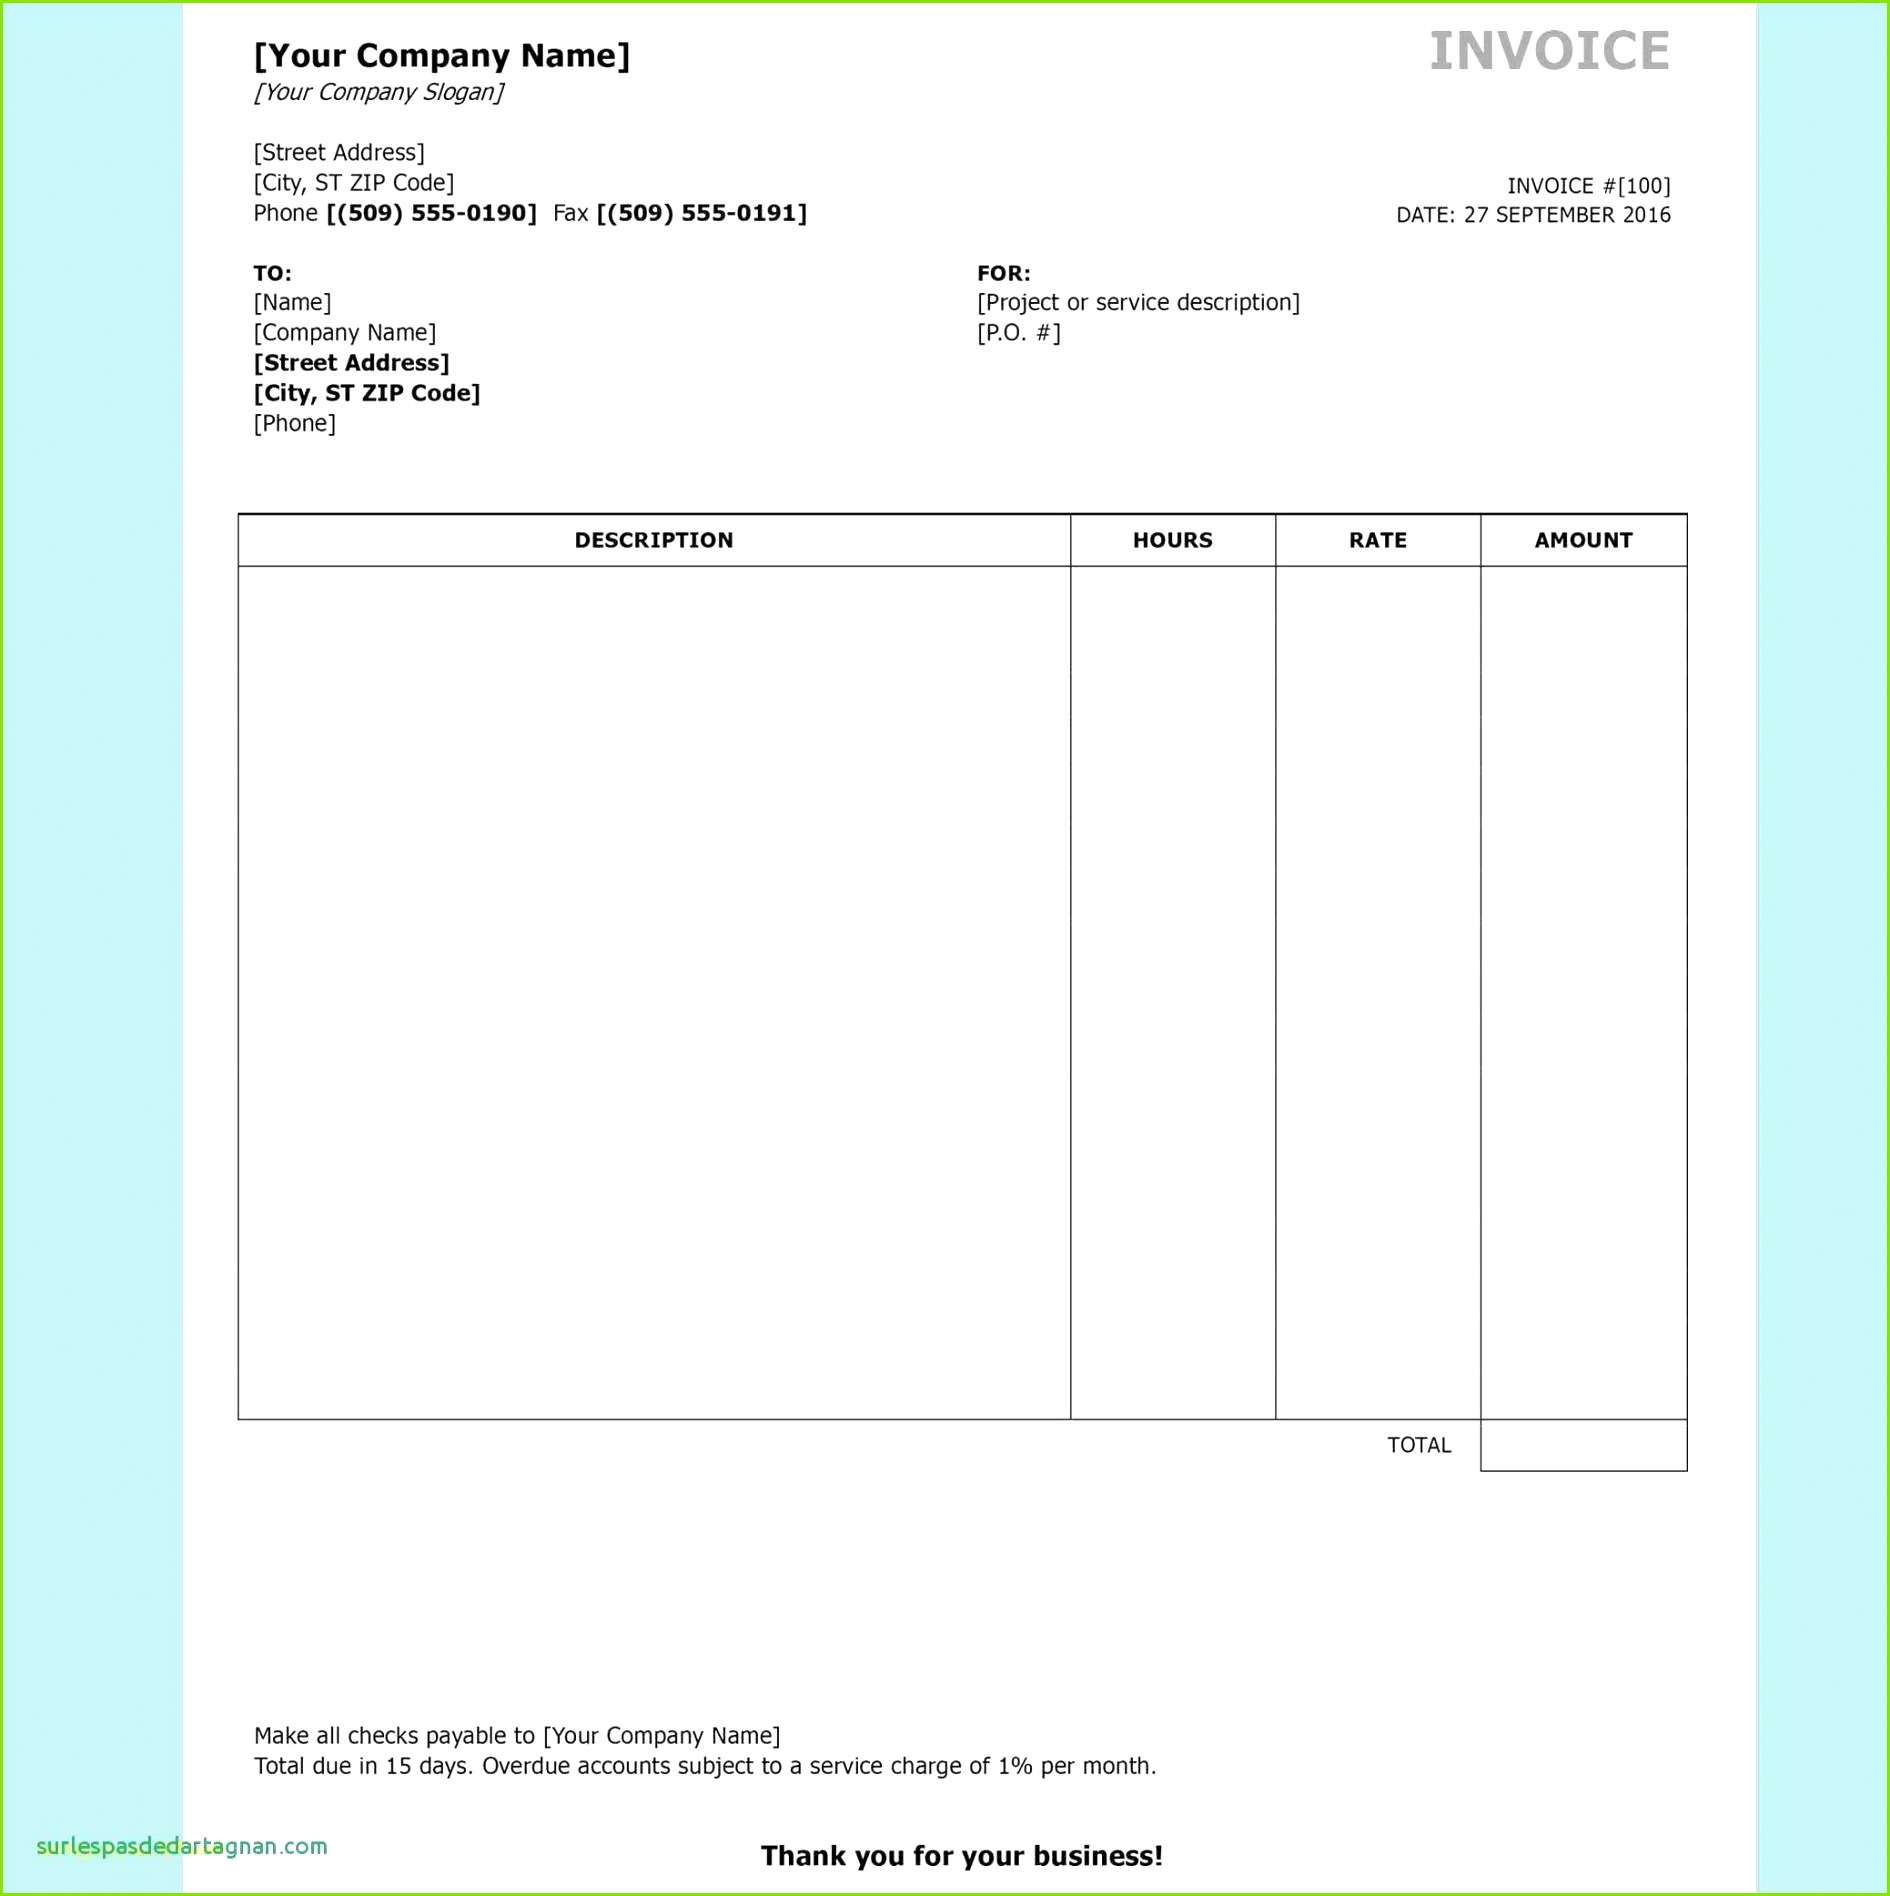 Excel Invoices Templates Free and Invoice Word Template Unique Ivoice Template 0d Archives Free Resume